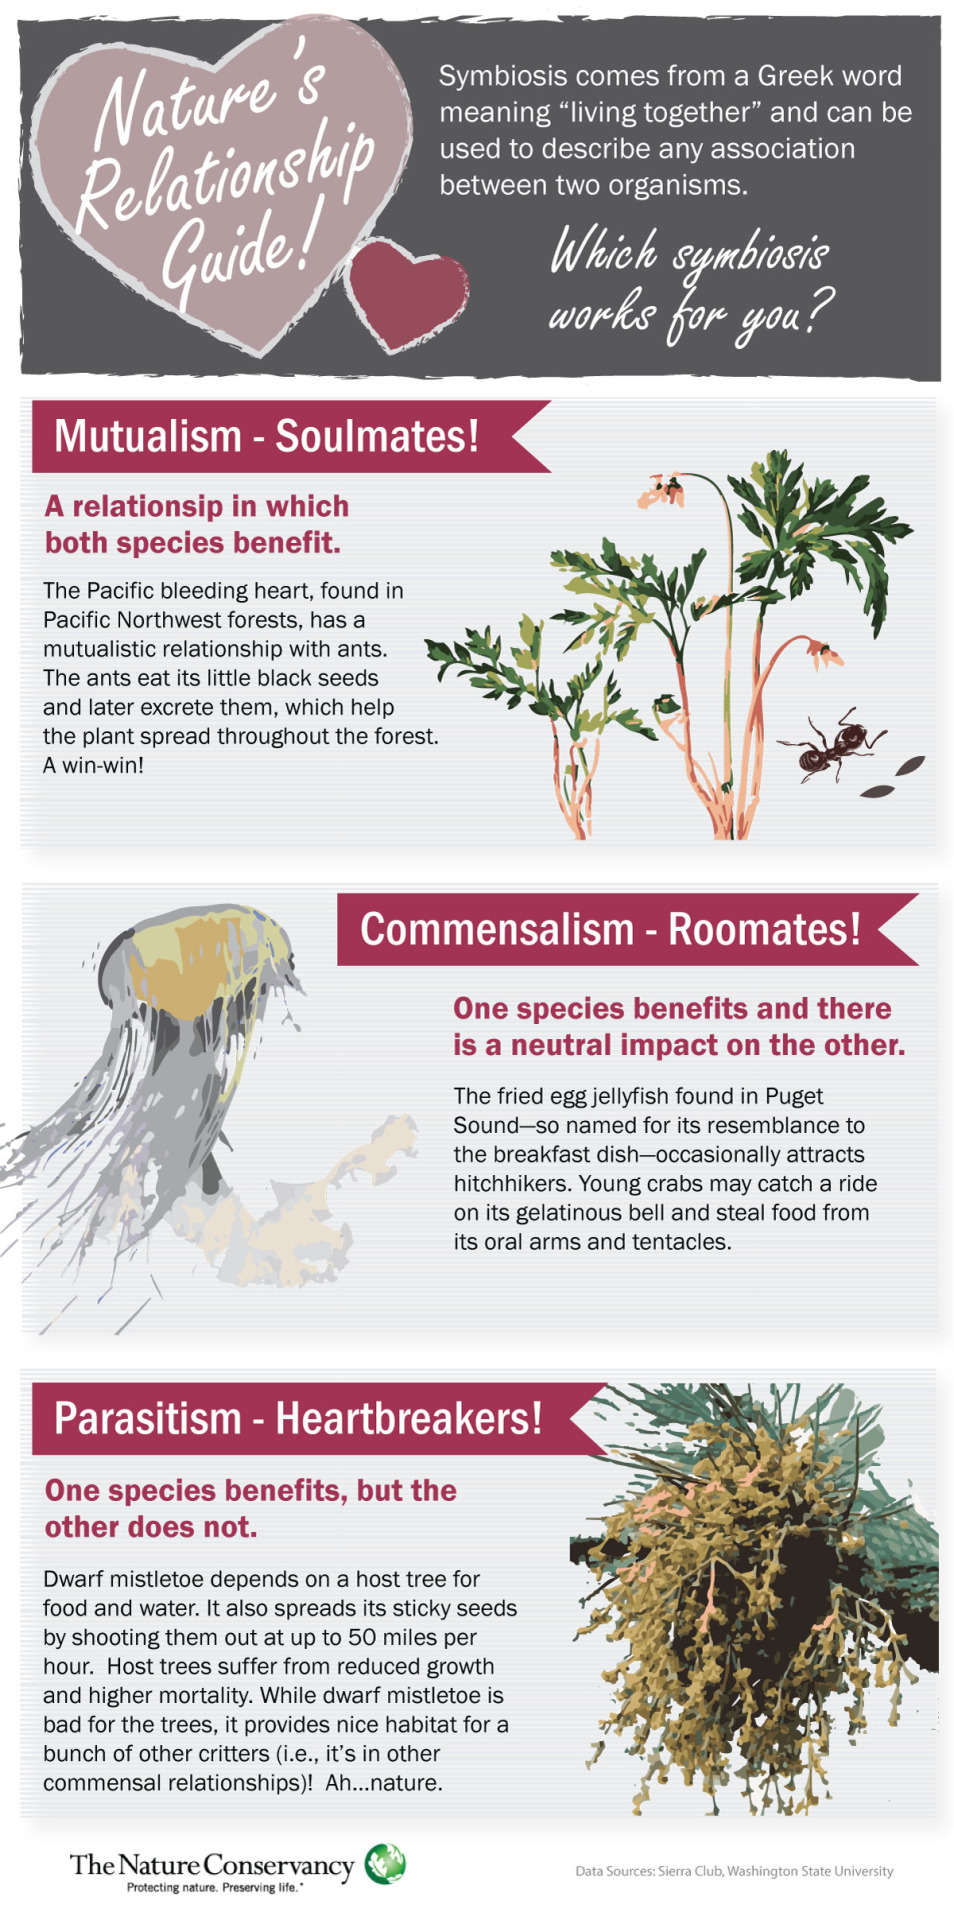 Nature & Valentines   In honor of the upcoming holiday, we took a look at symbiosis in nature through our Nature Relationship Guide!